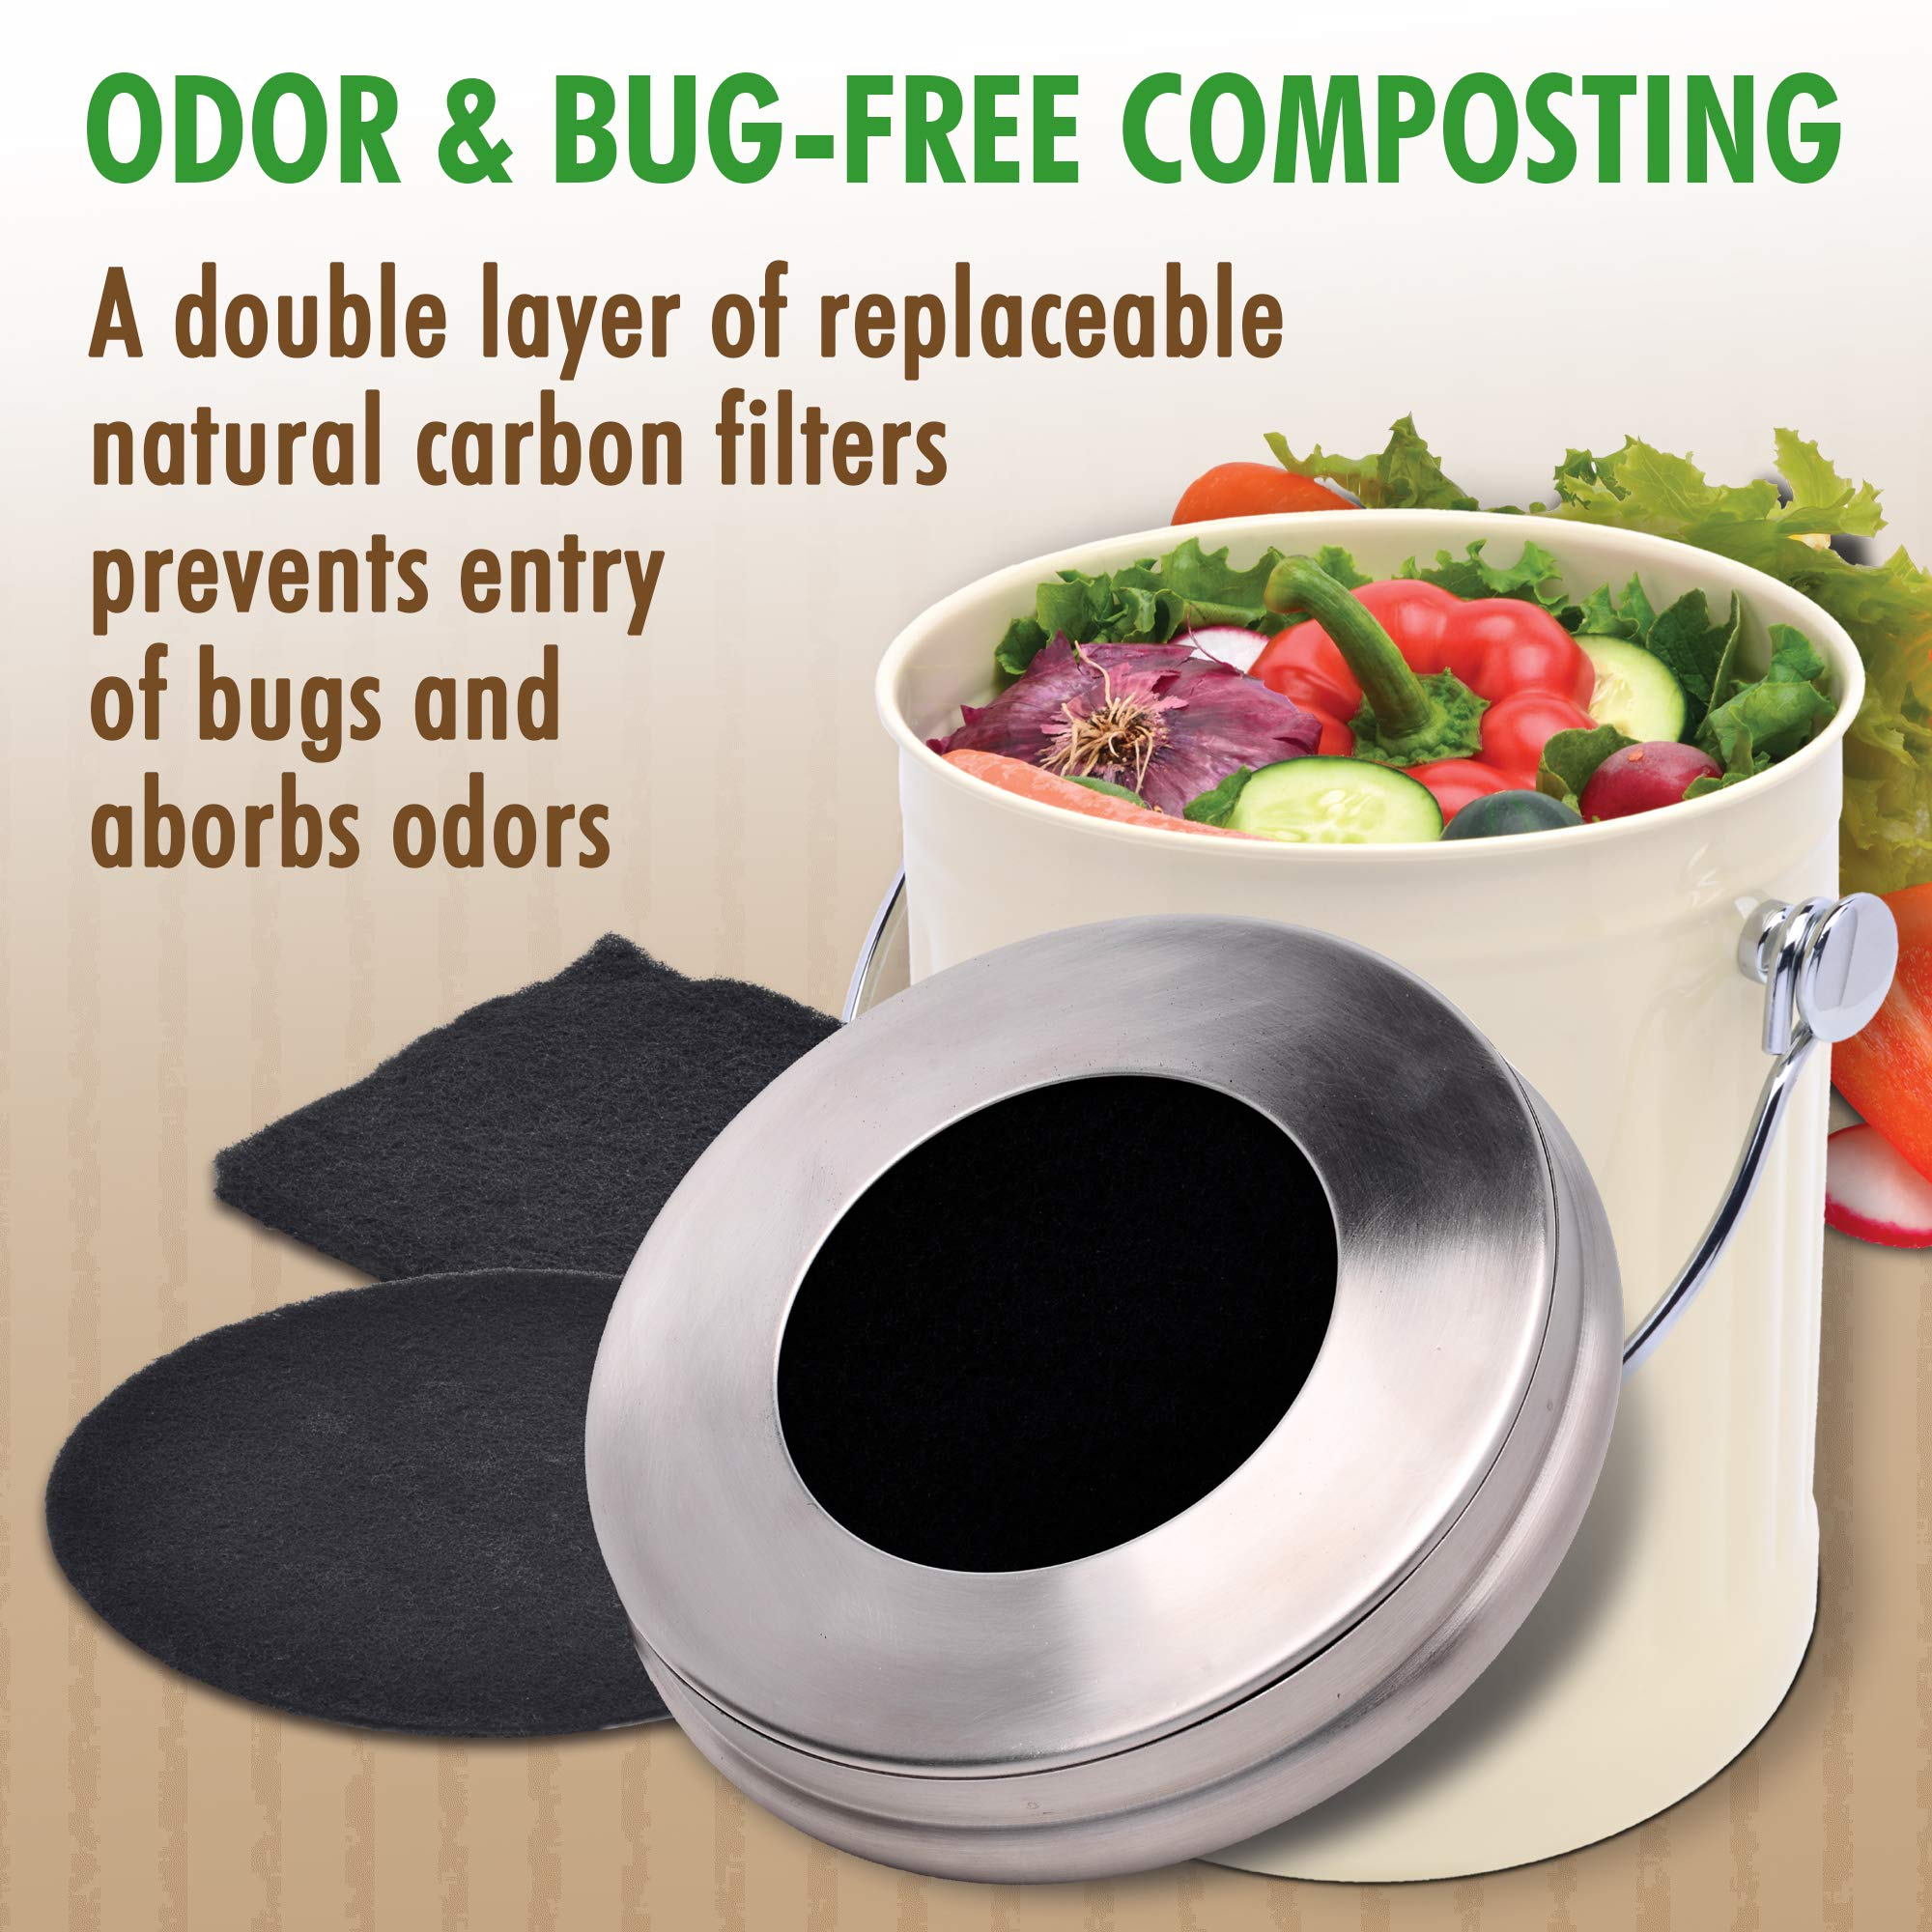 iTouchless EcoWise Compost Bin Container Dual Deodorizer Activated Carbon Filters, 1.32 Gallon Kitchen Trash Can, Stainless Steel Lid, Odor-Stopping Power, Cream by iTouchless (Image #2)